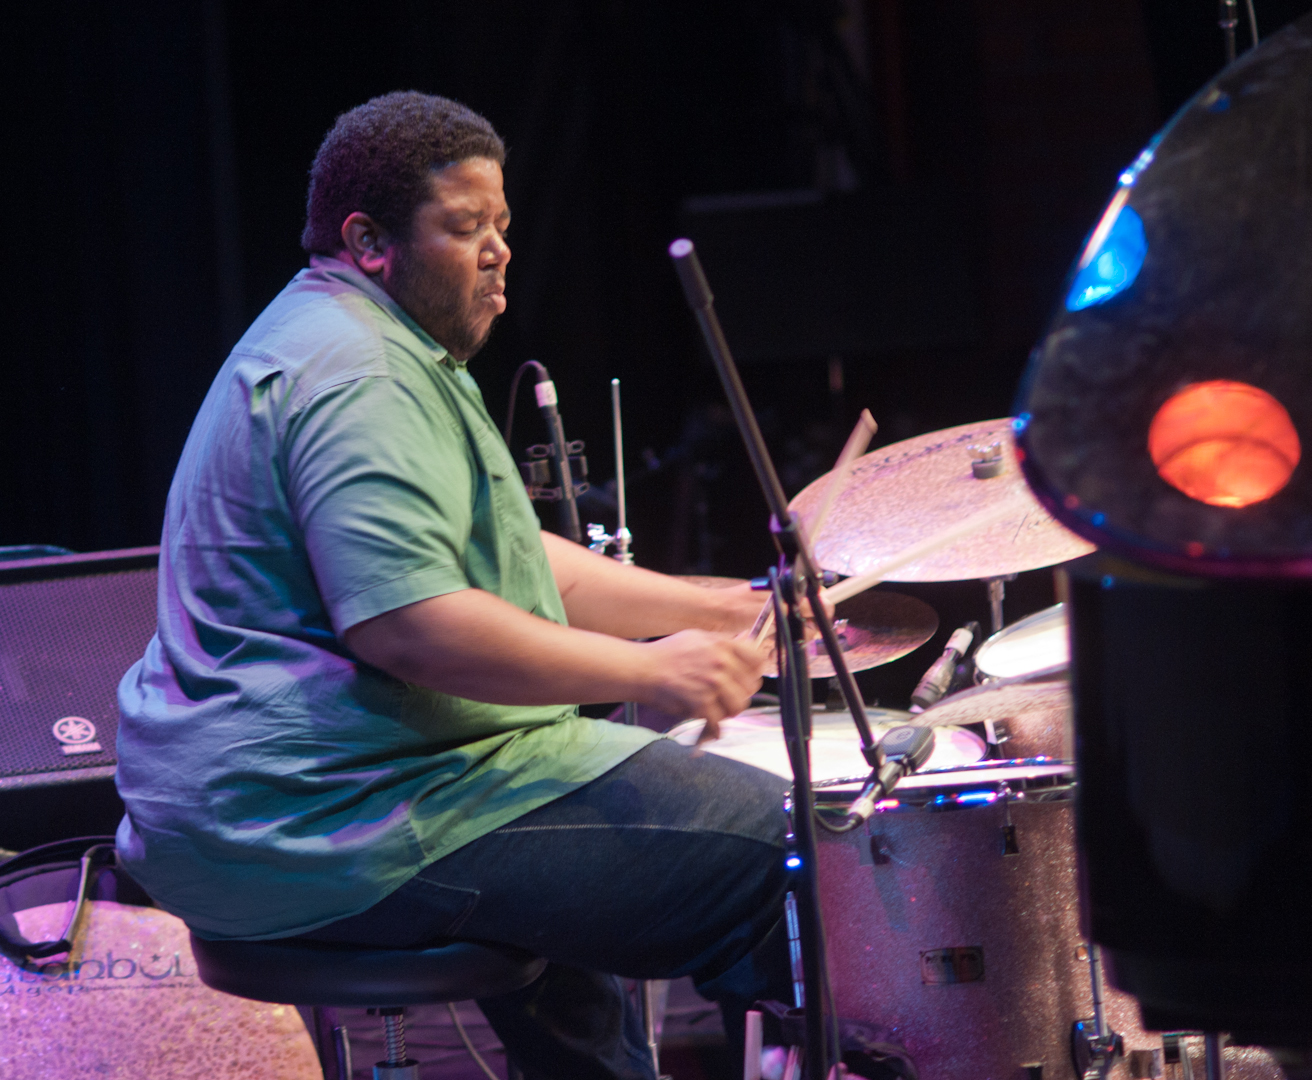 Tyshawn Sorey with Paradoxical Frog at the Vision Festival 2011